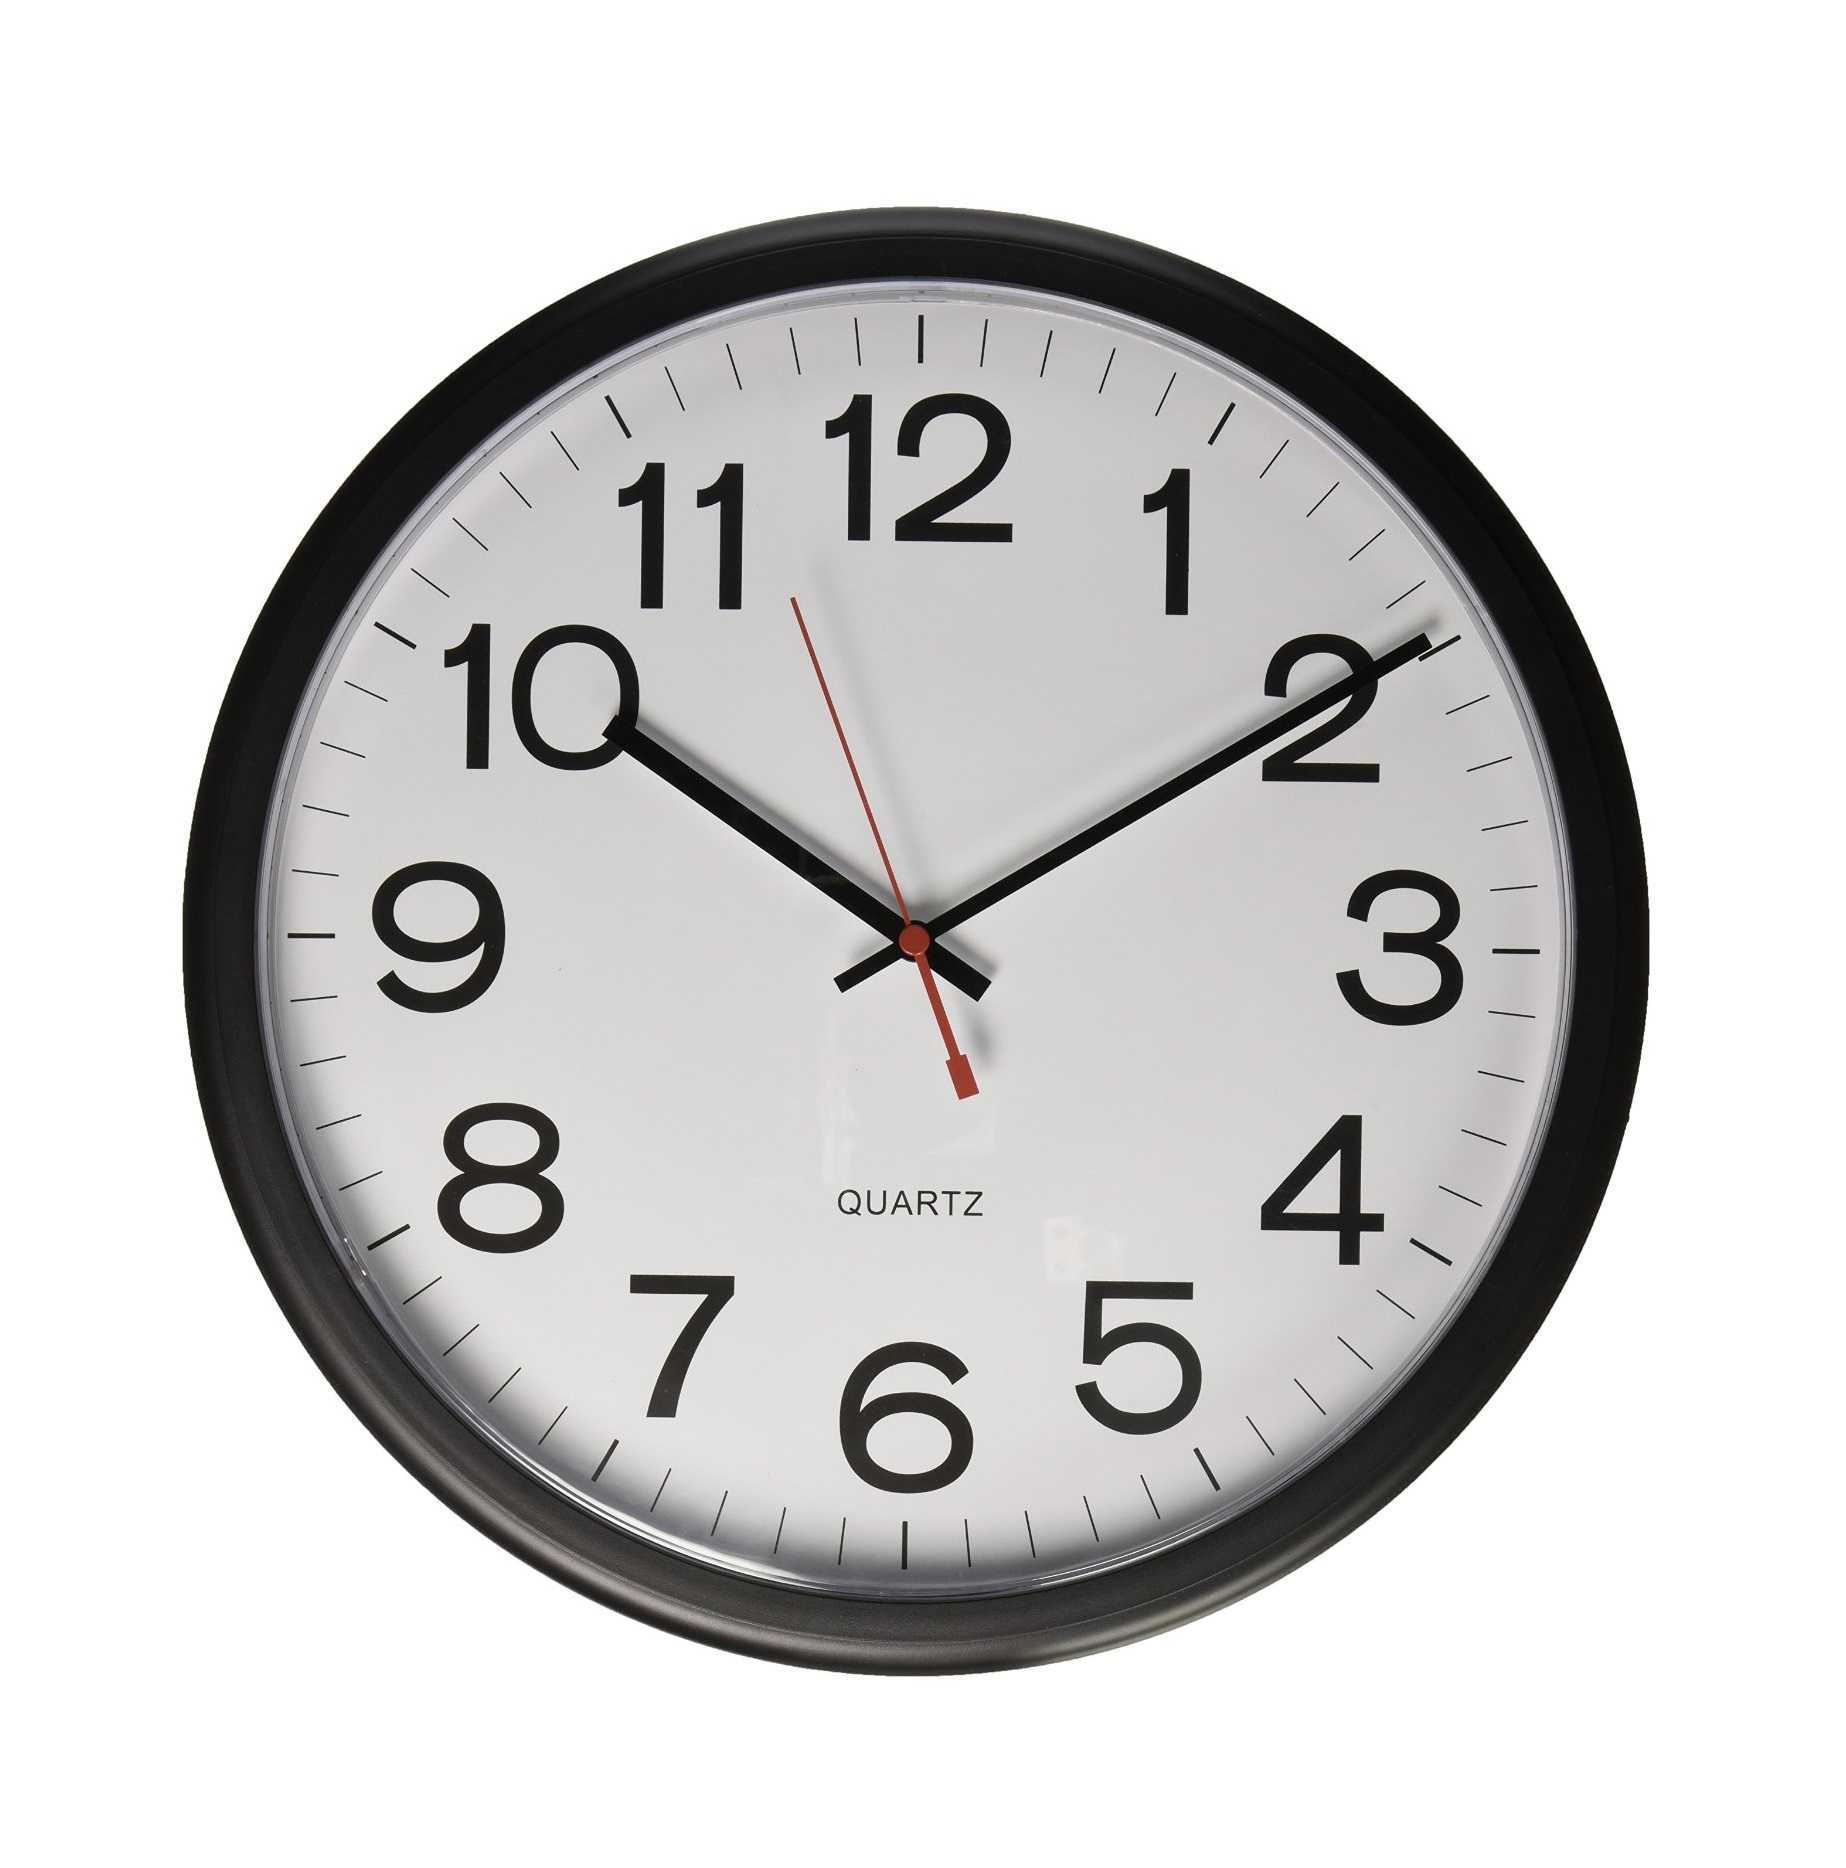 Universal Indoor/Outdoor Weather Resistant Wall Clock